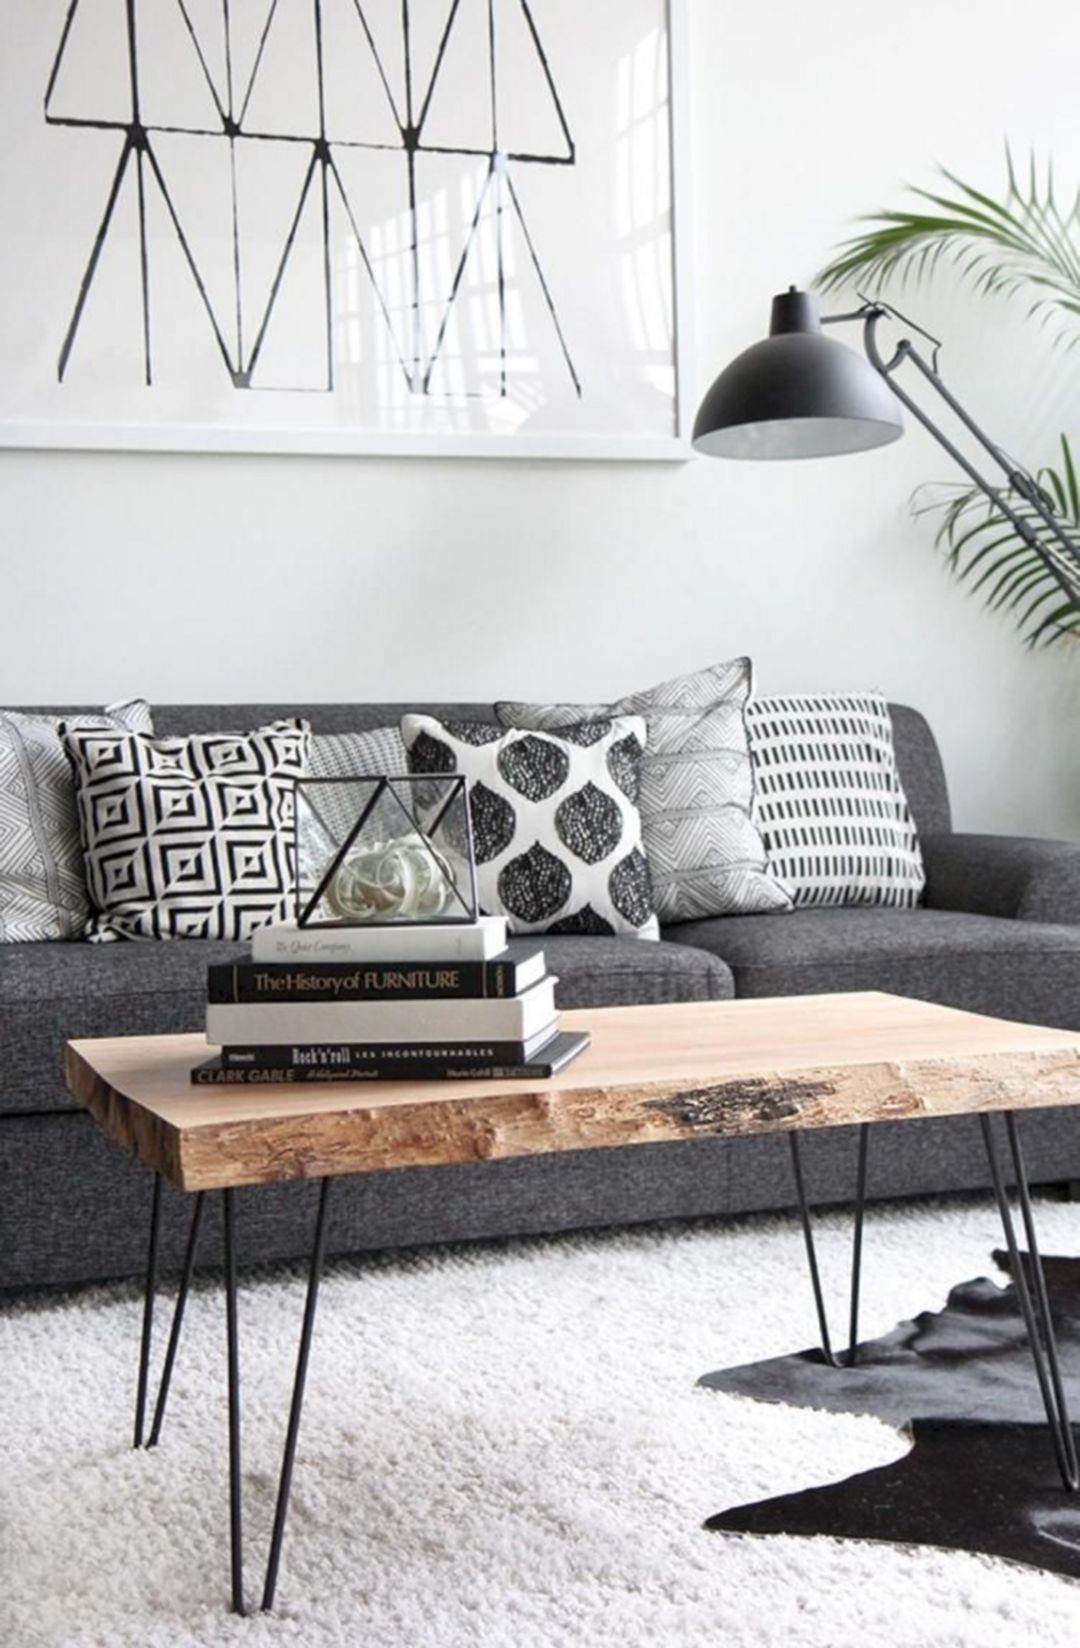 Home interior ideas for apartments  best decor ideas for your small living room apartment  living